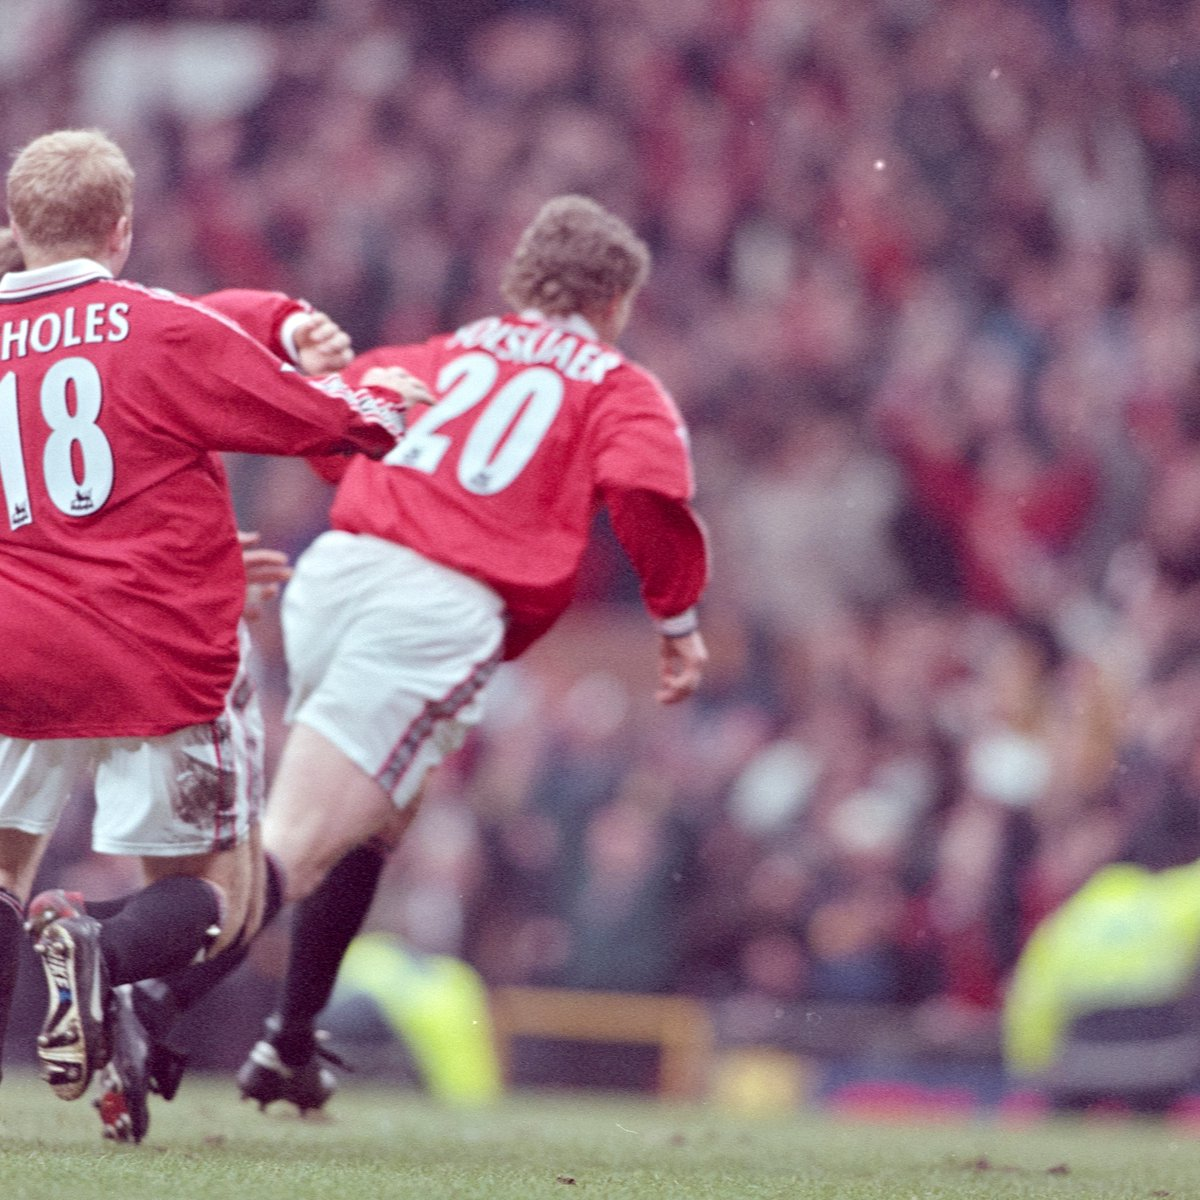 📅 #OnThisDay in 1999, we played Liverpool in the #FACup fourth round...  🏟️ The venue was Old Trafford, and look who bagged the winner! 😍  #MUFC